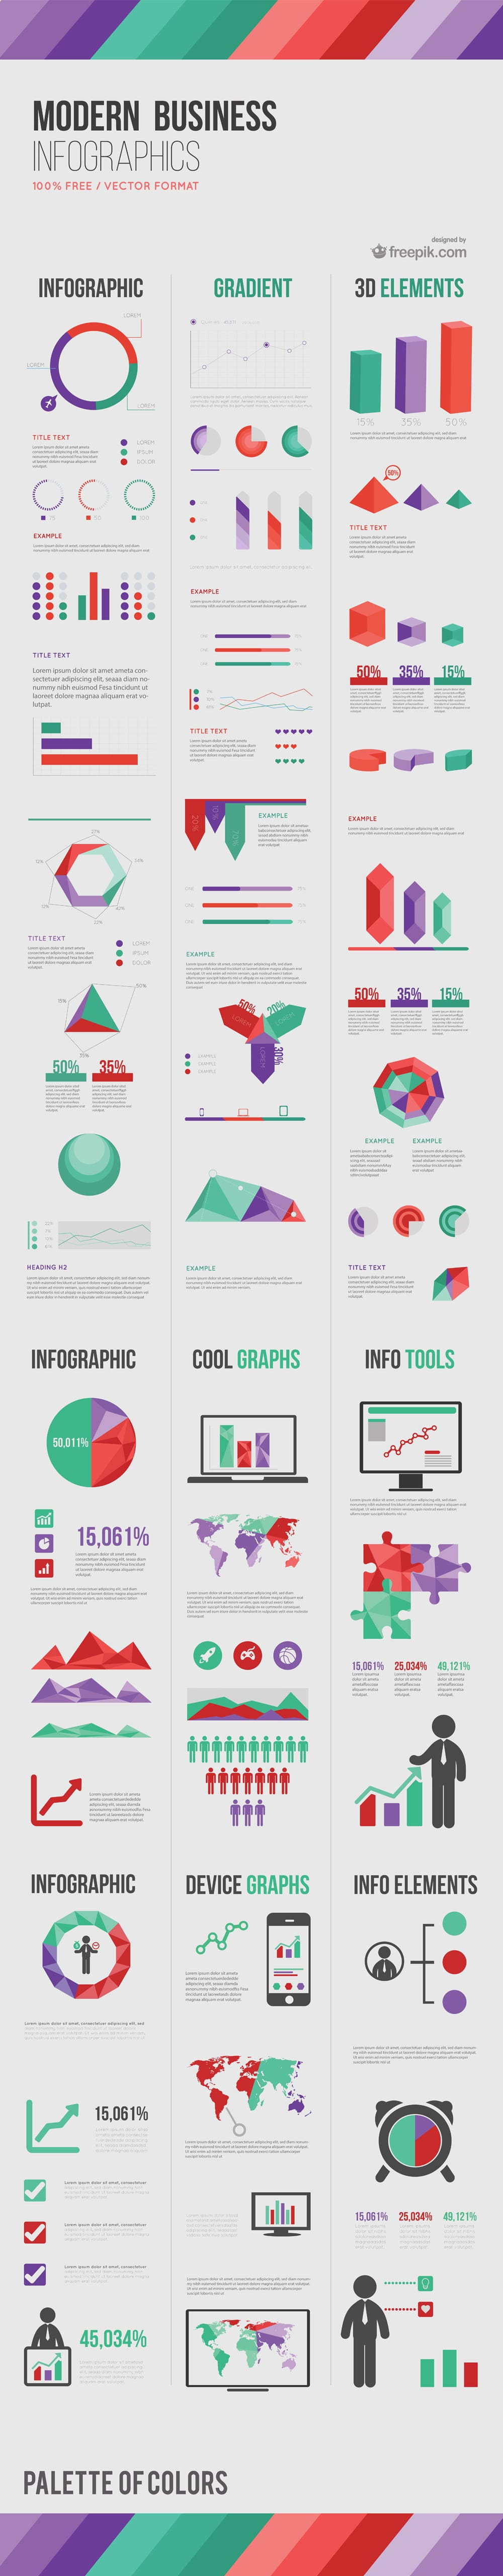 Modern Business Infographic Elements